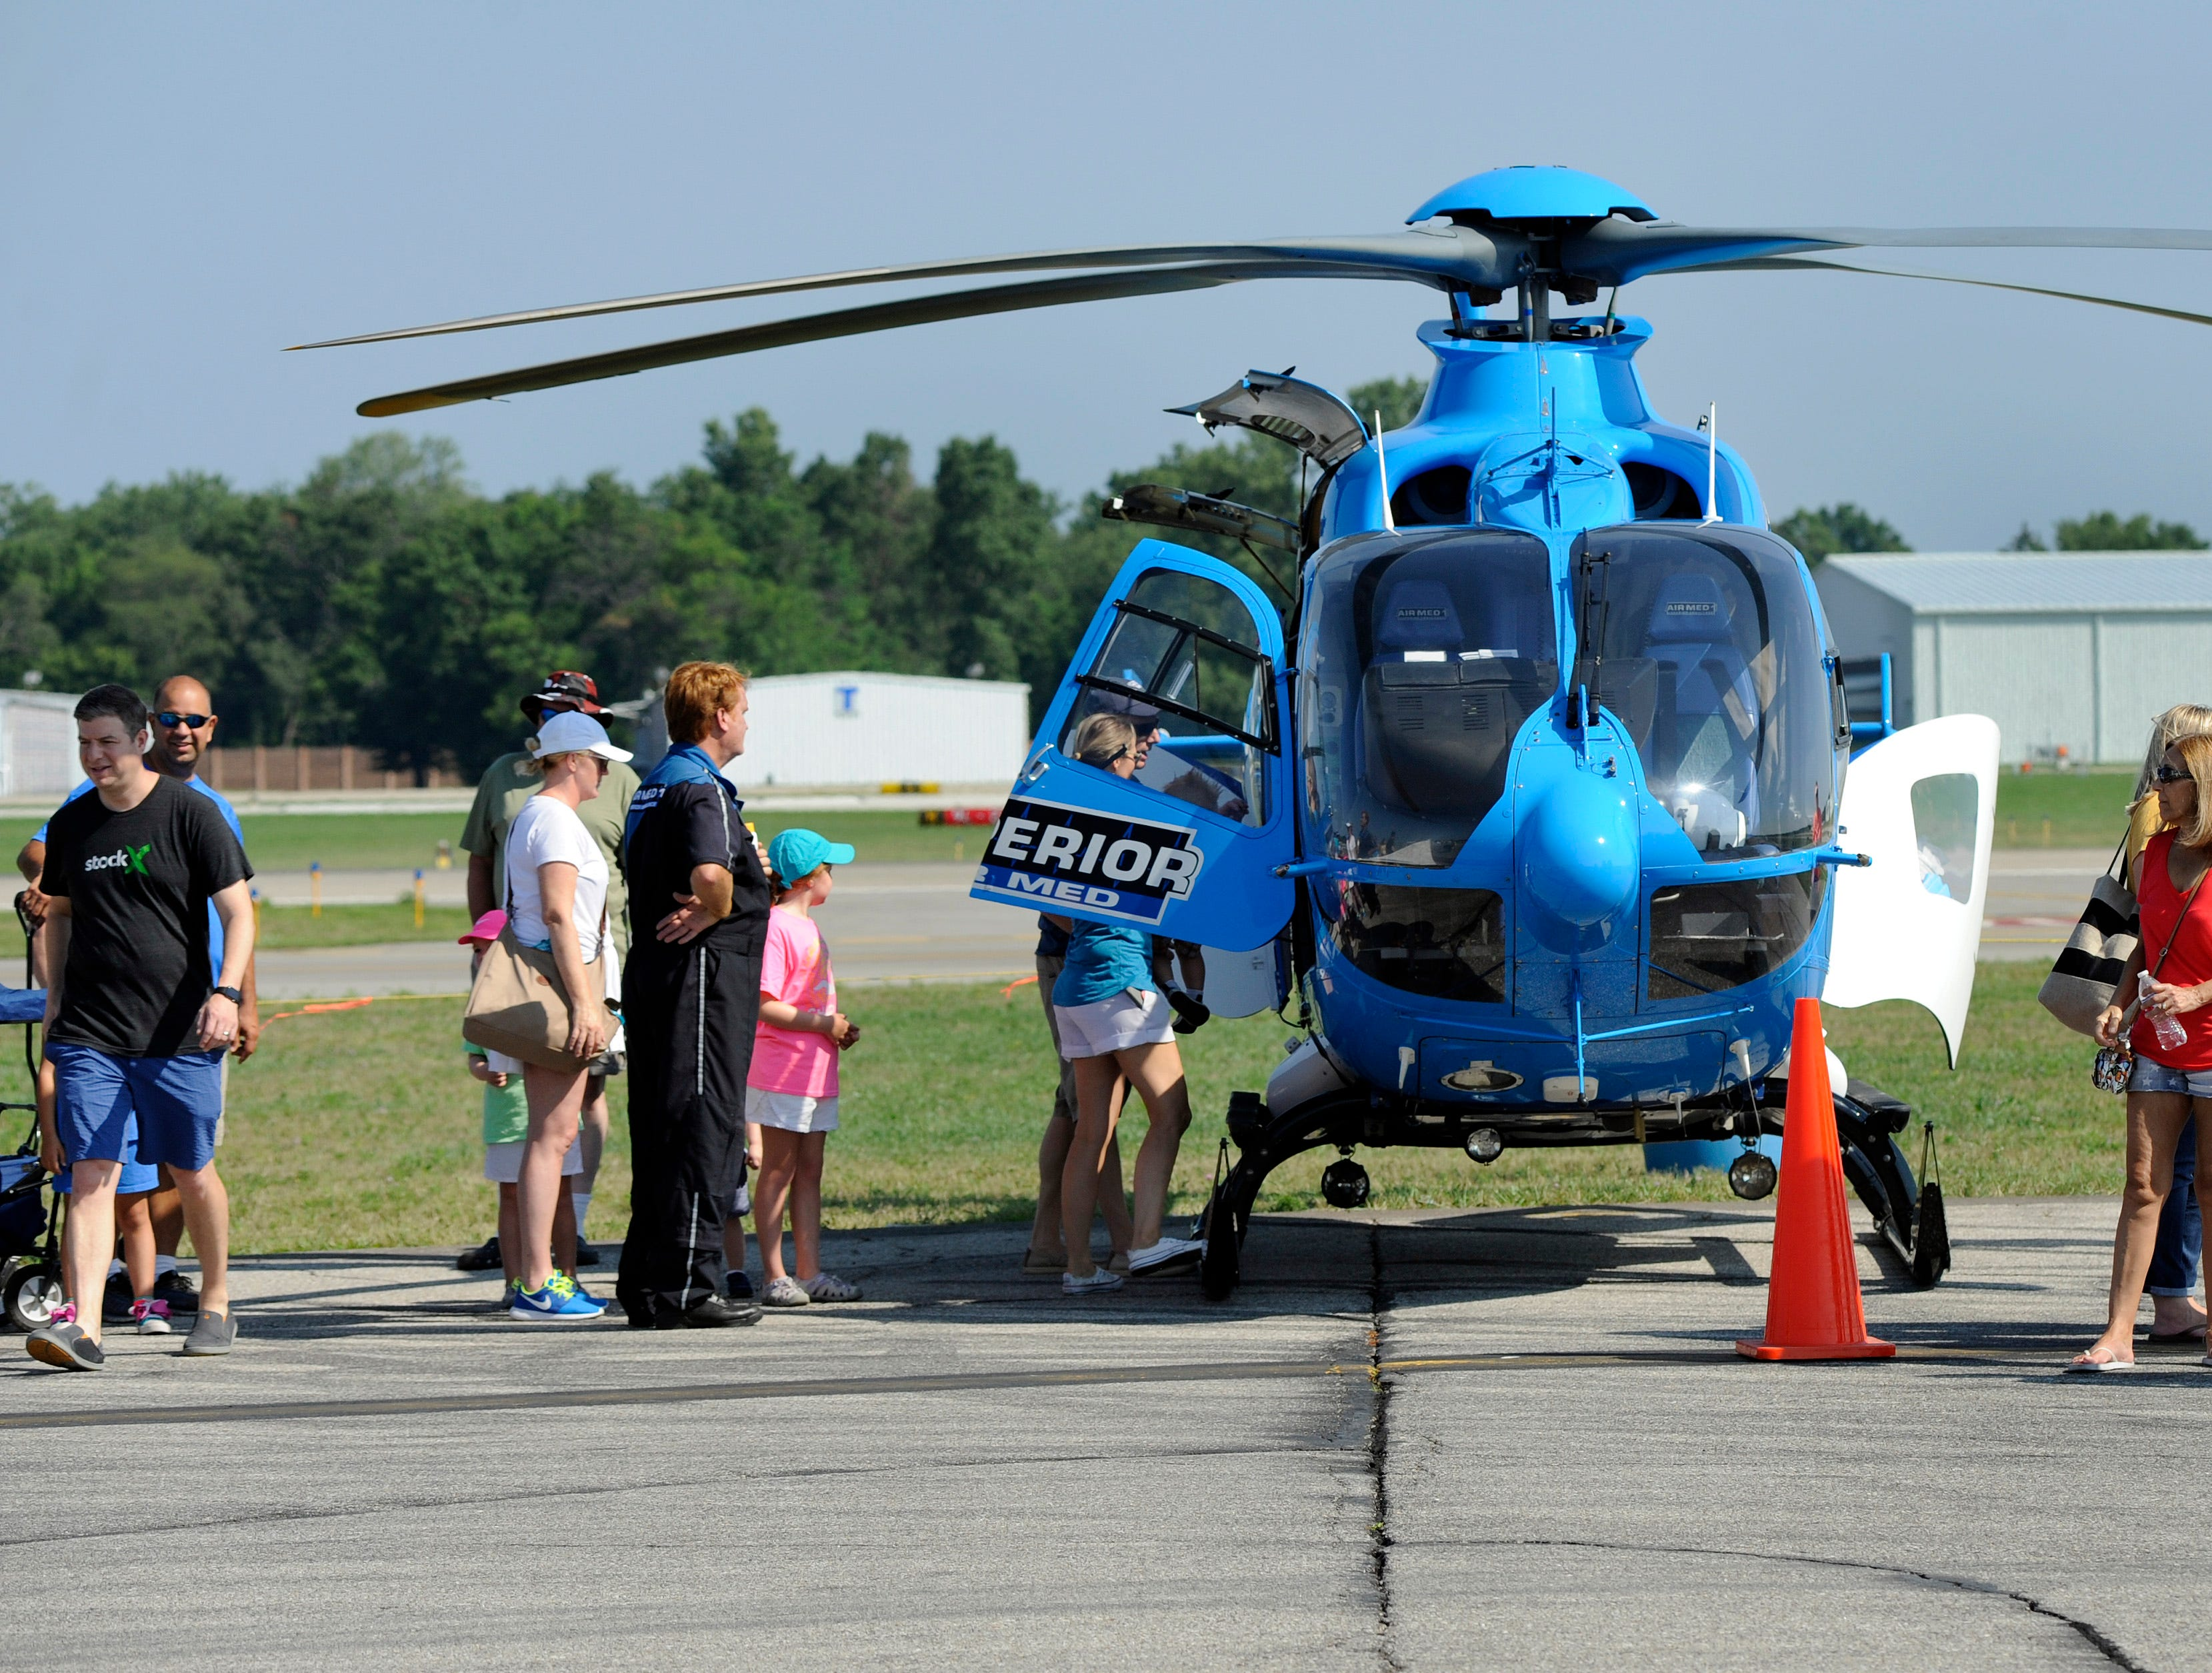 Visitors to the Air Show & Open House look over the Superior Air Med I helicopter, which is used by Henry Ford Hospital through Superior Ambulance Service.